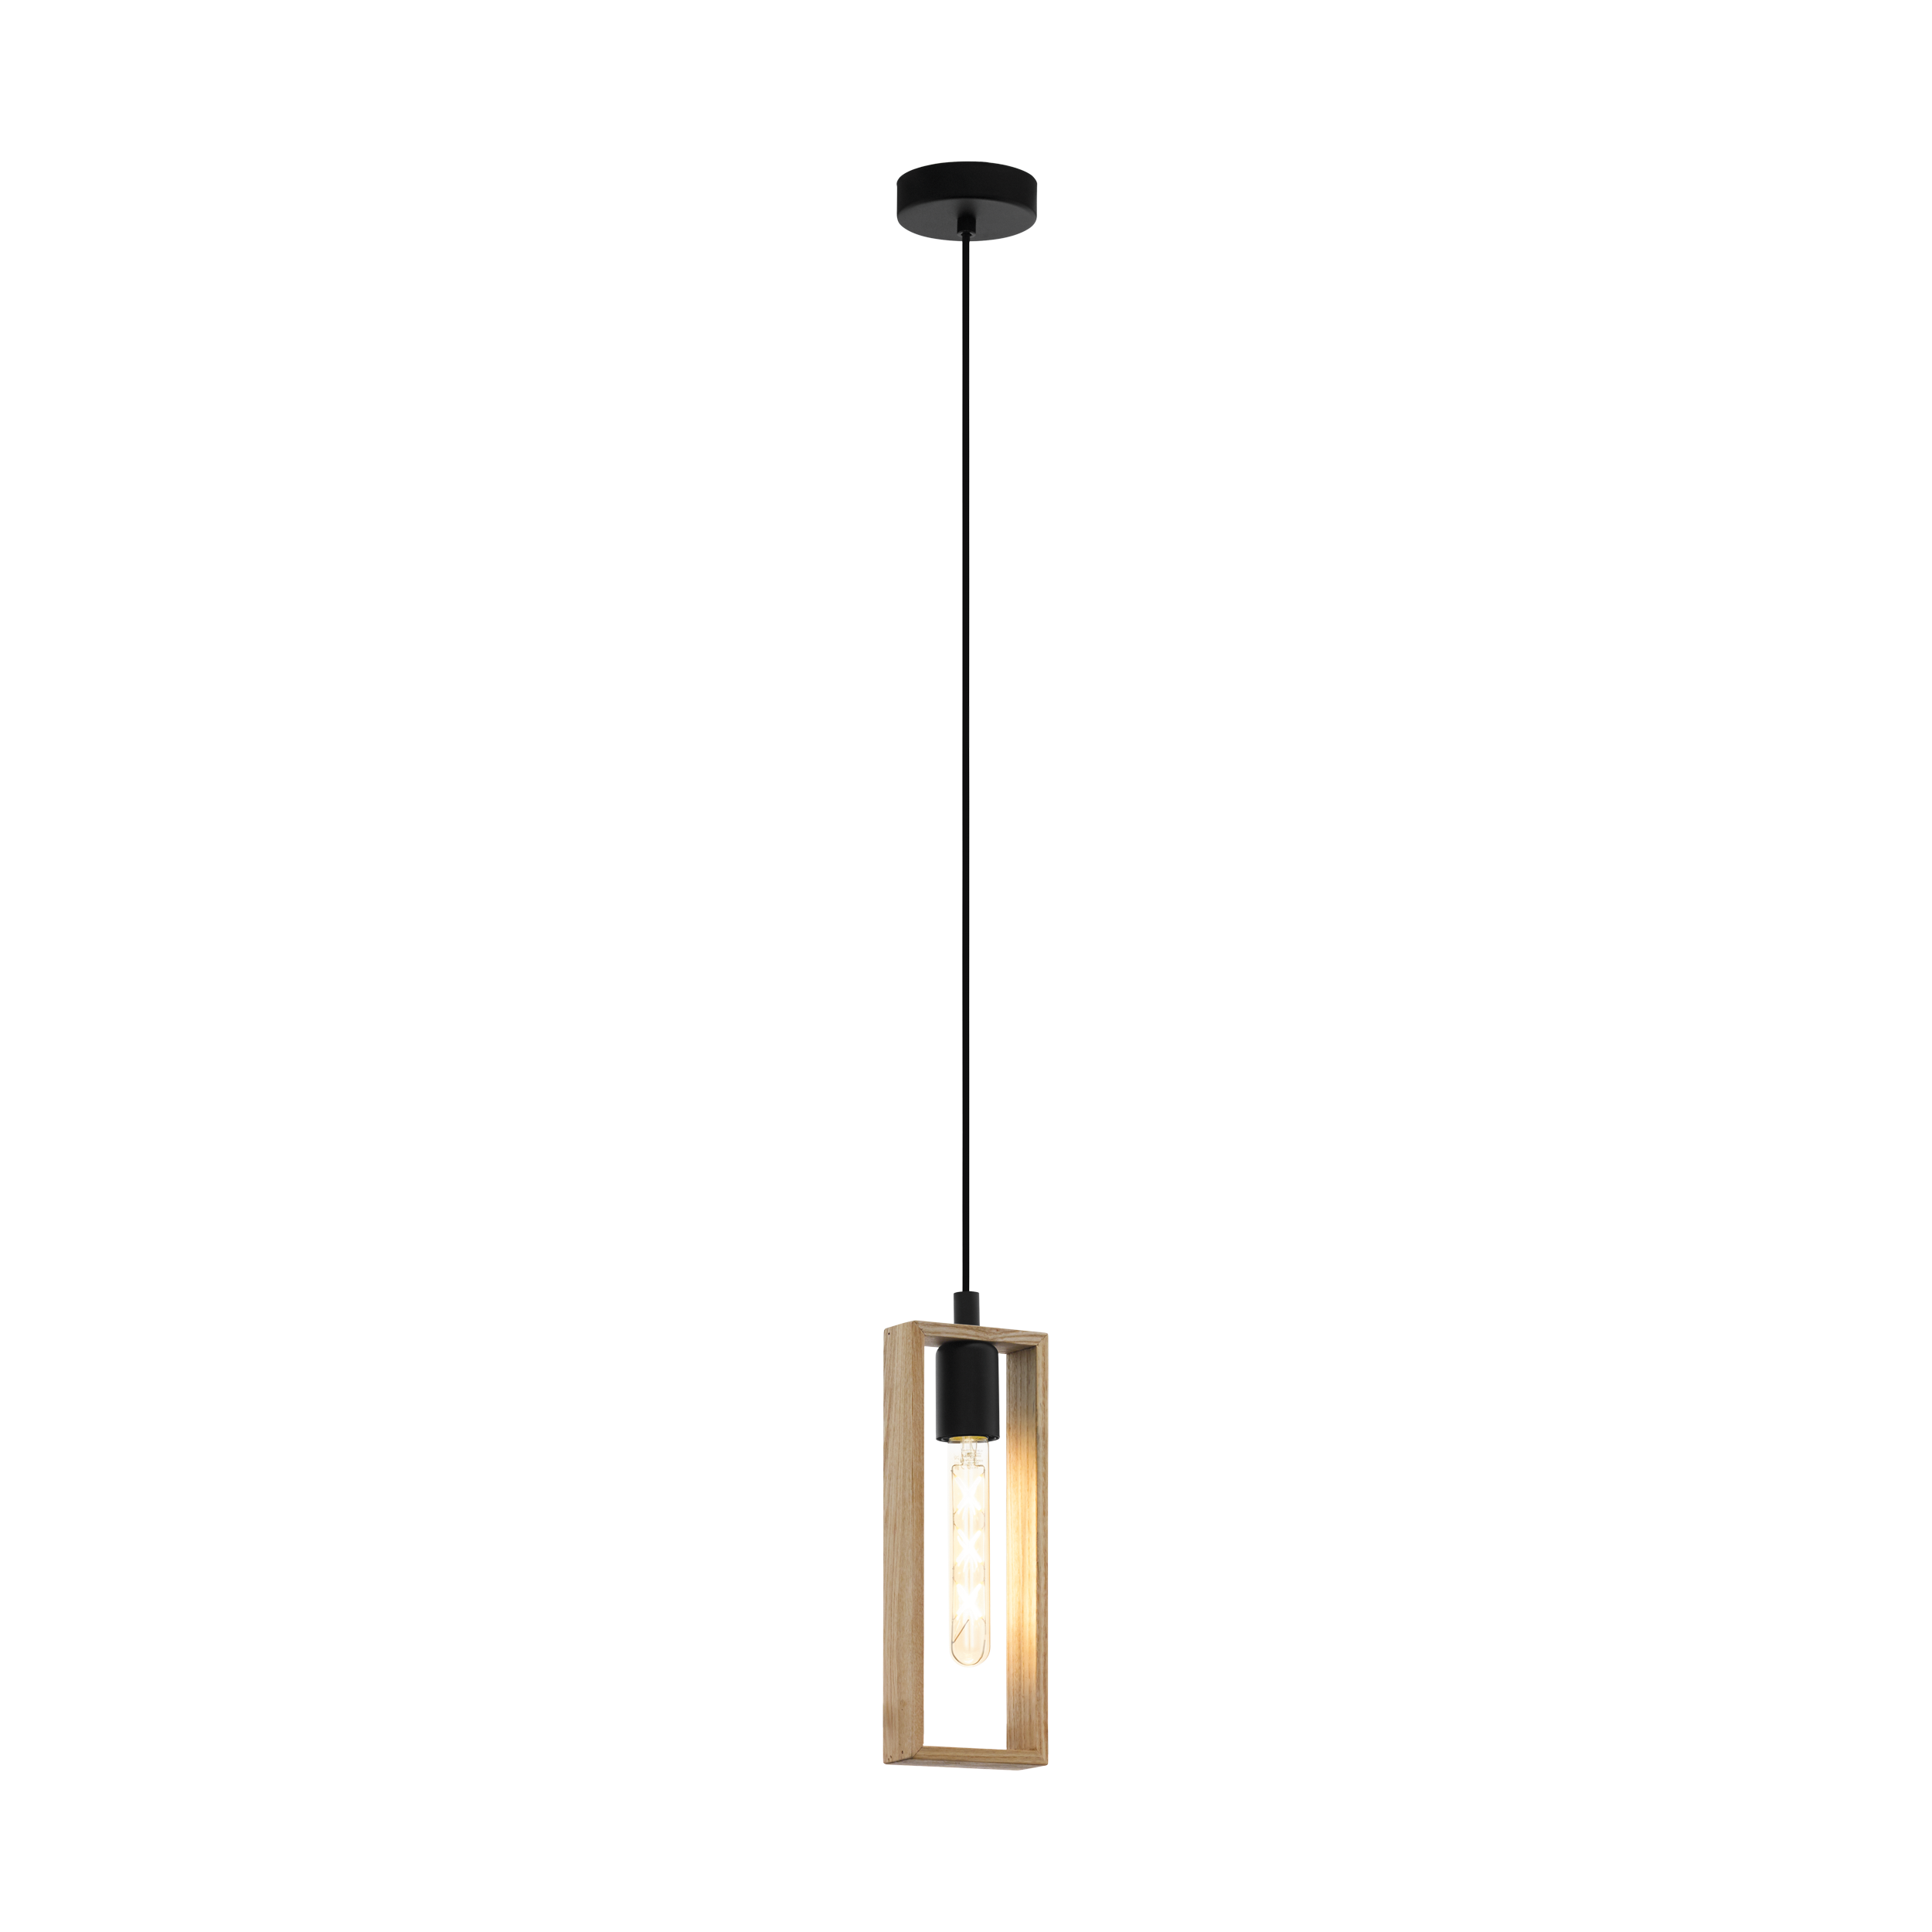 EGLO 'LITTLETON' PENDANT LIGHT 1xE27